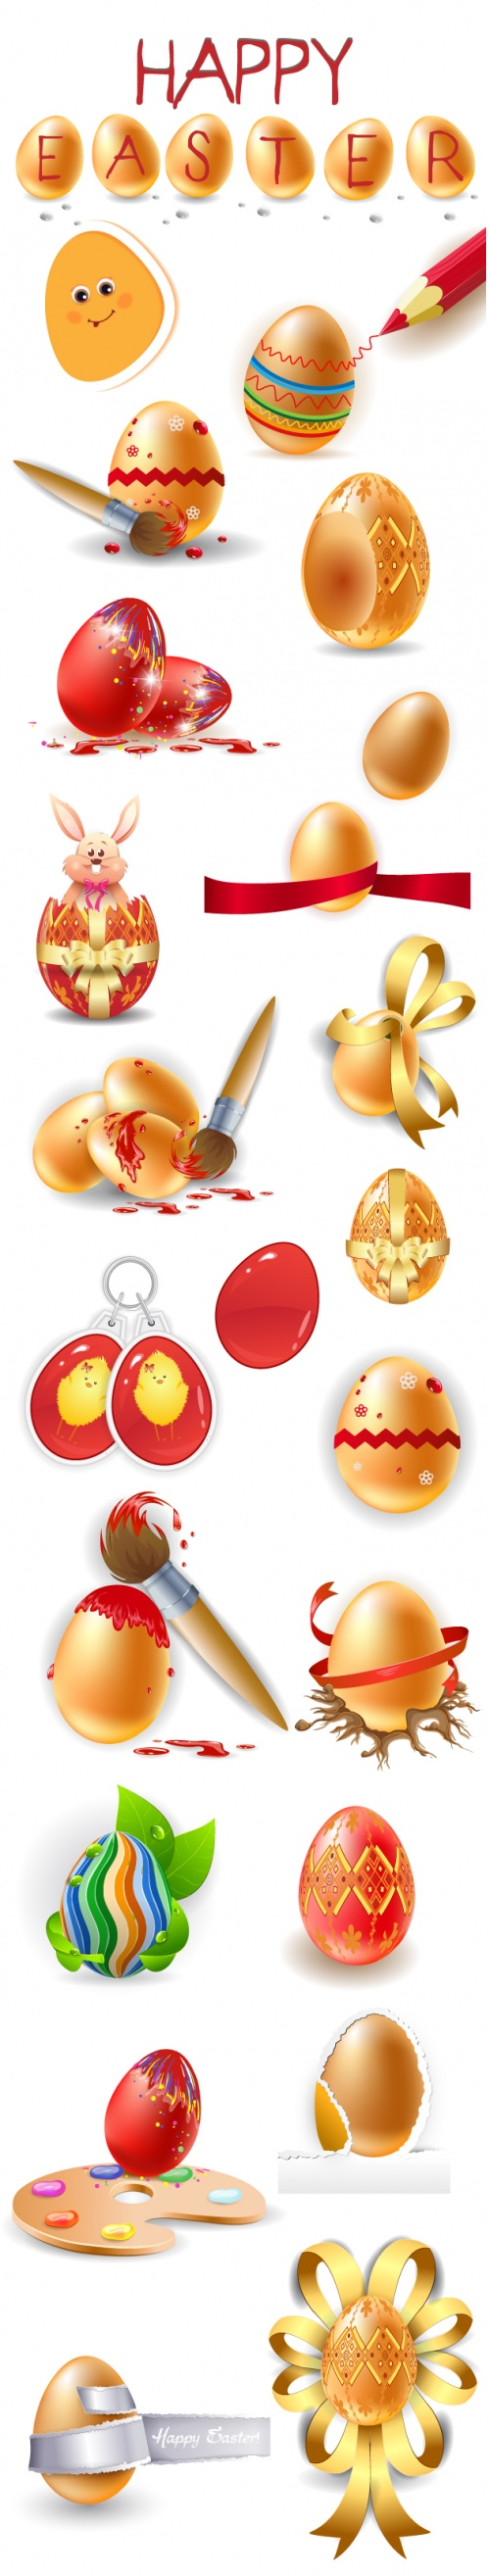 Designtnt - Easter Elements Vector Set 1